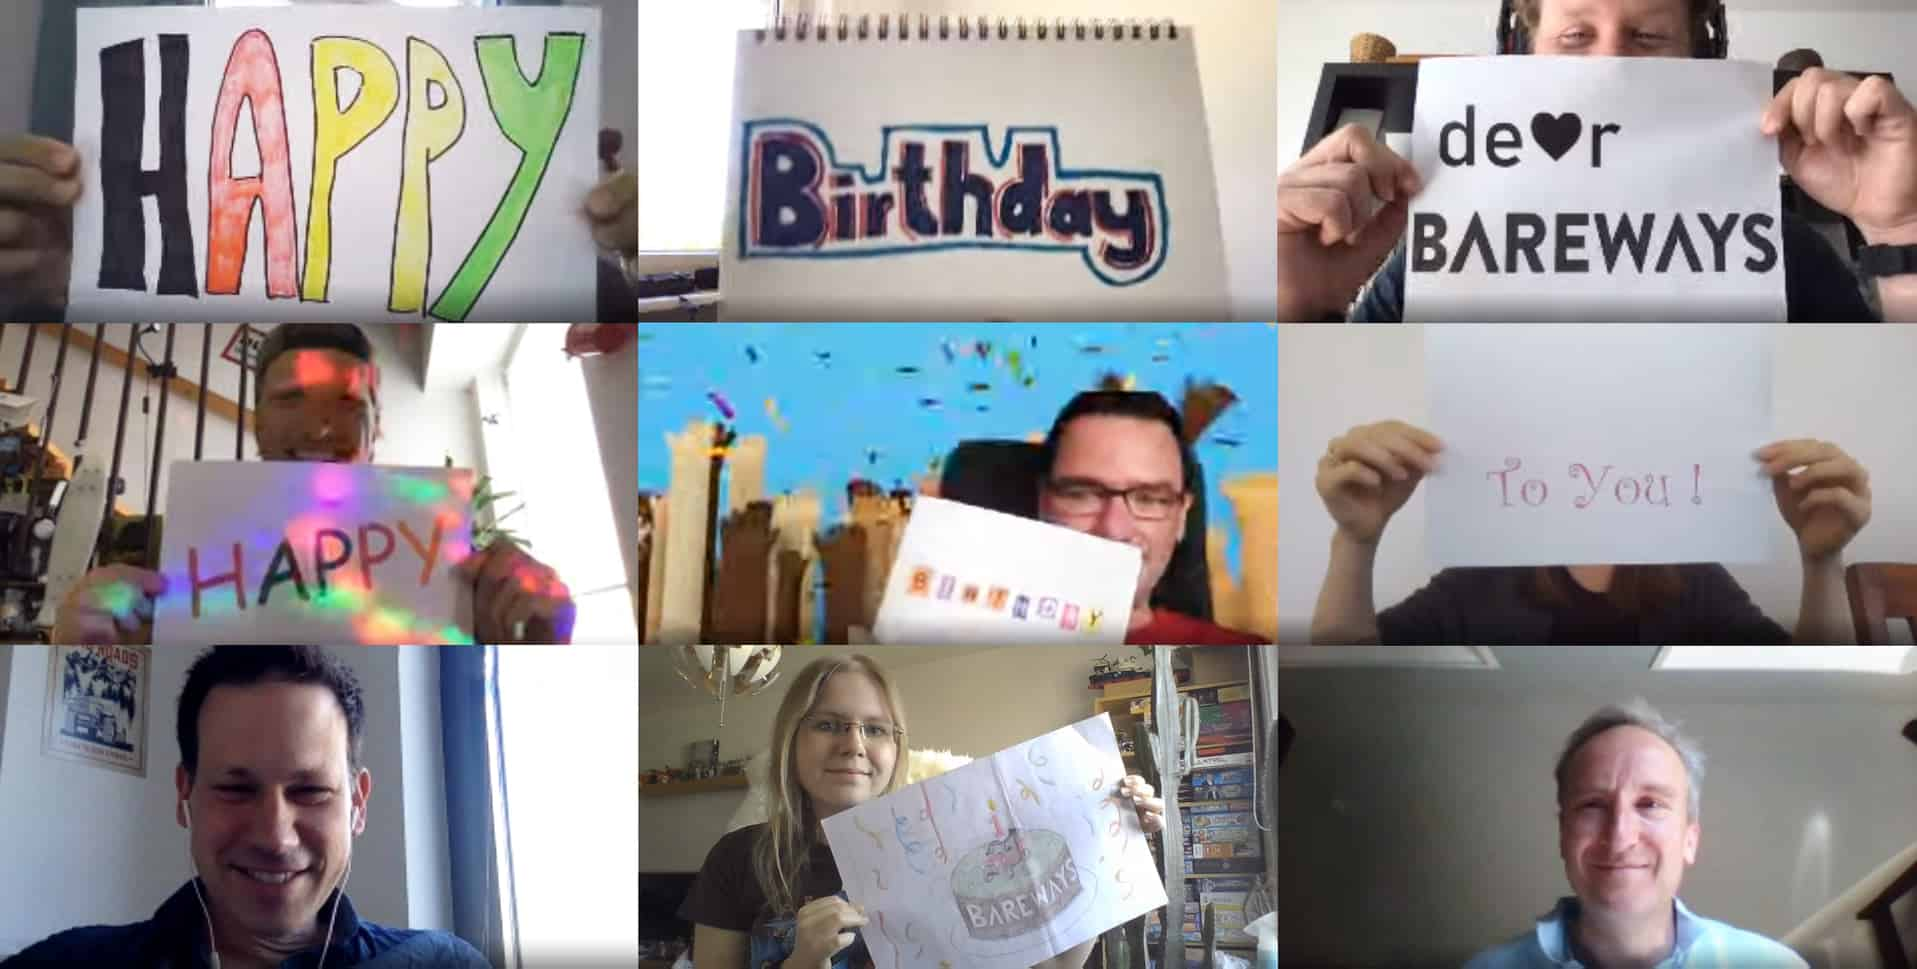 You see a screenshot of a Bareways teamchat. Team is smiling and holding Birthday wishes in the camera.